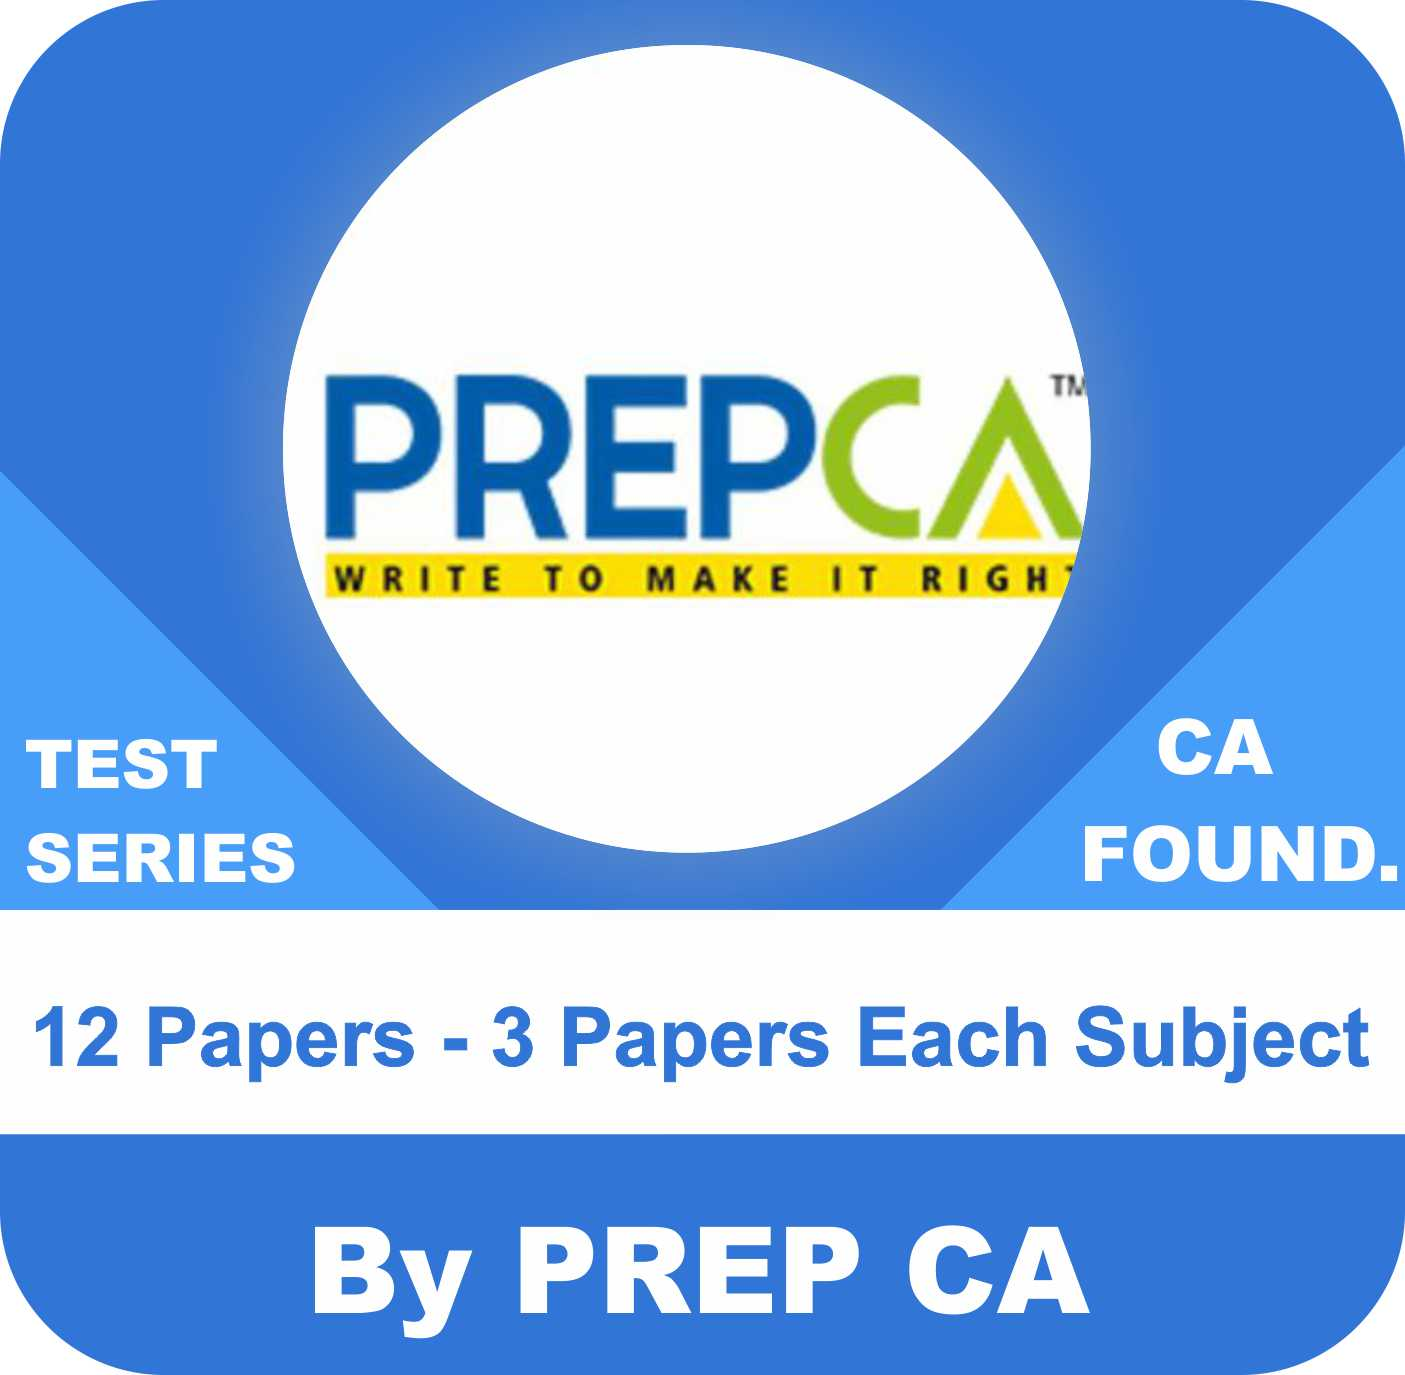 All Subjects (12 Papers - 3 Papers Each Subject) Test Series In Standard Plus Program